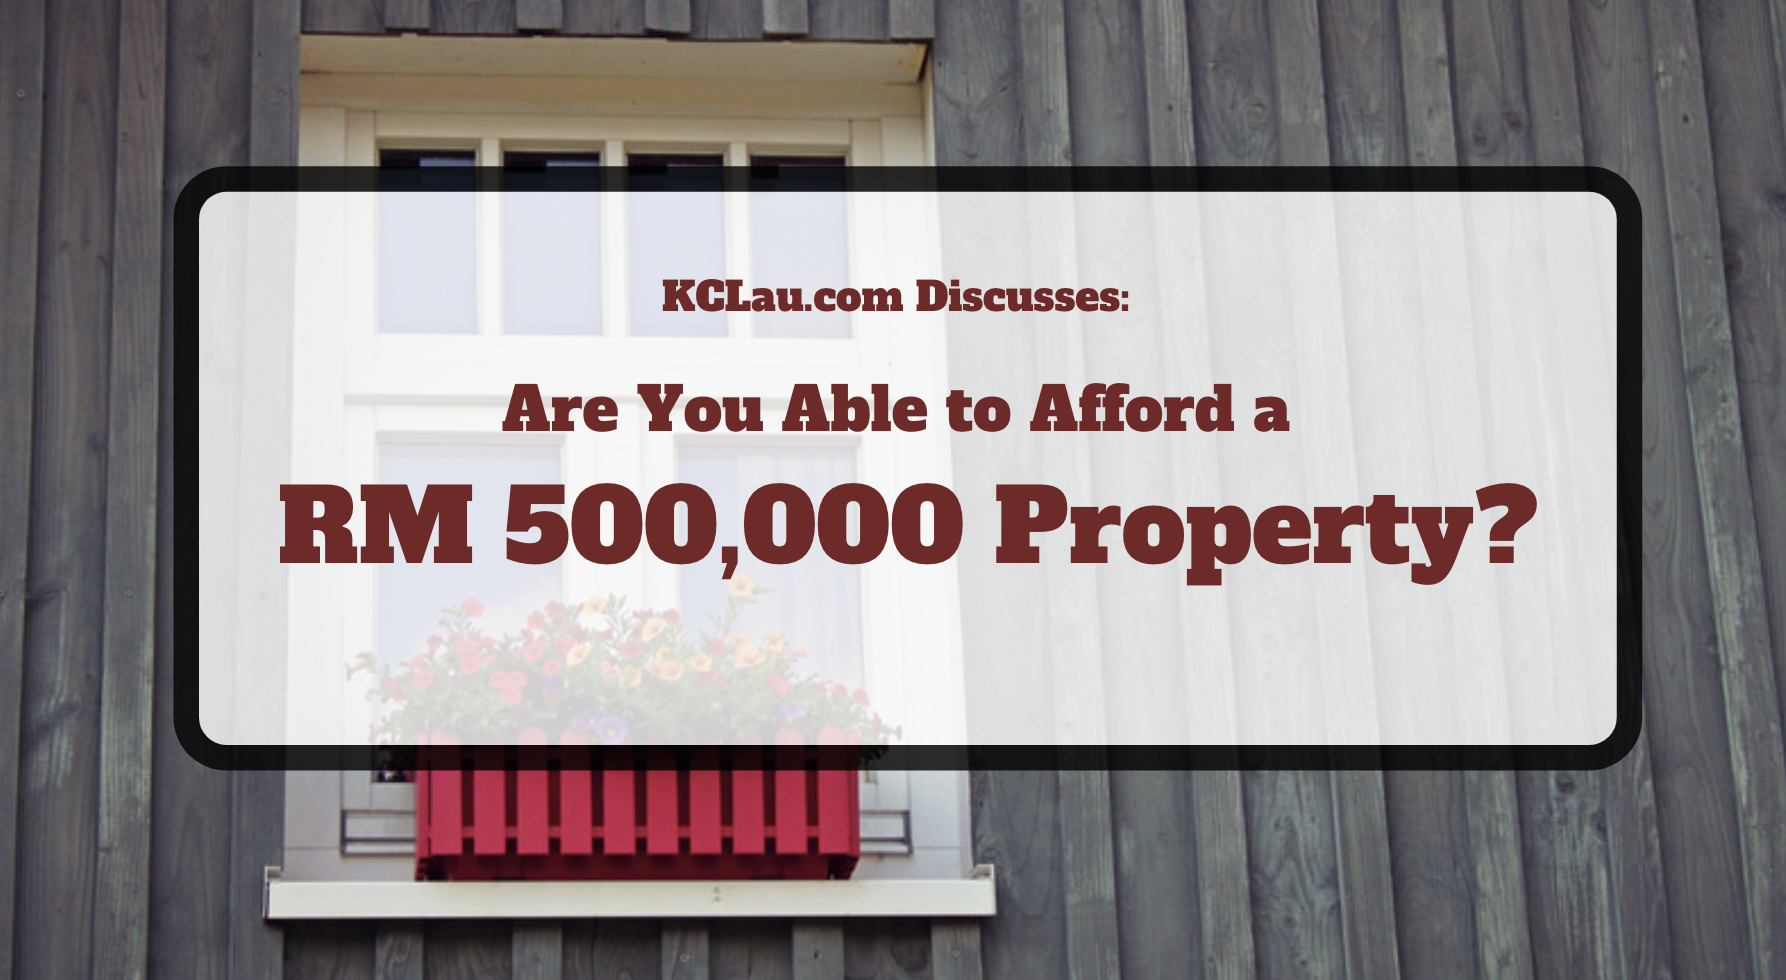 Can You Afford to Buy a RM 500,000 Property in Malaysia Today?